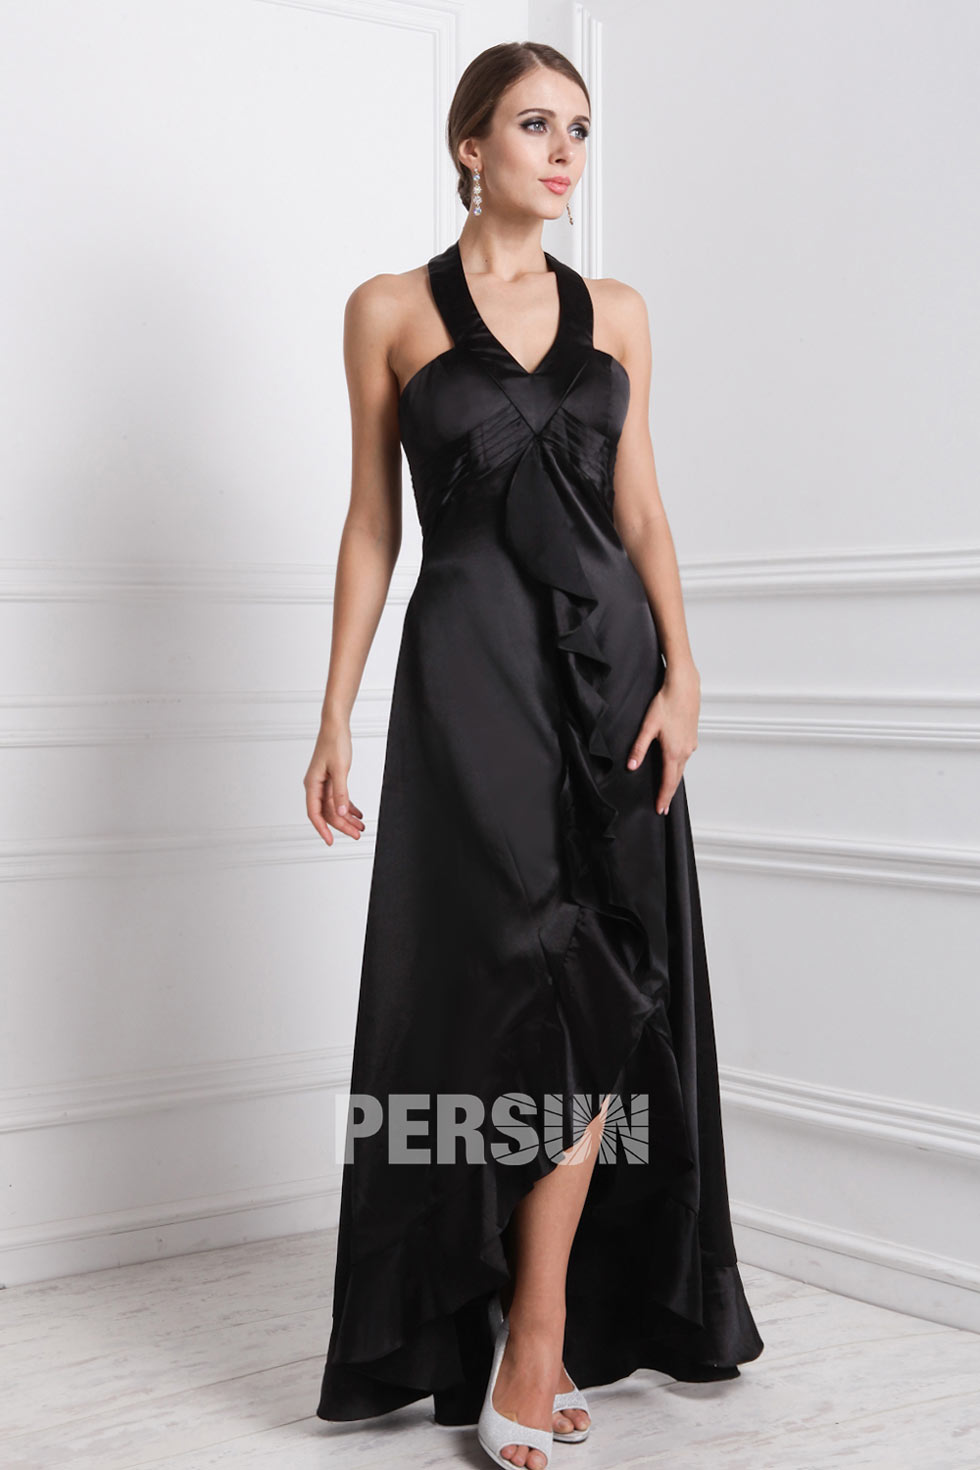 Plus Size Wedding Dresses Rugby : Rugby elastic woven satin halter ruffle high low prom dress on sale